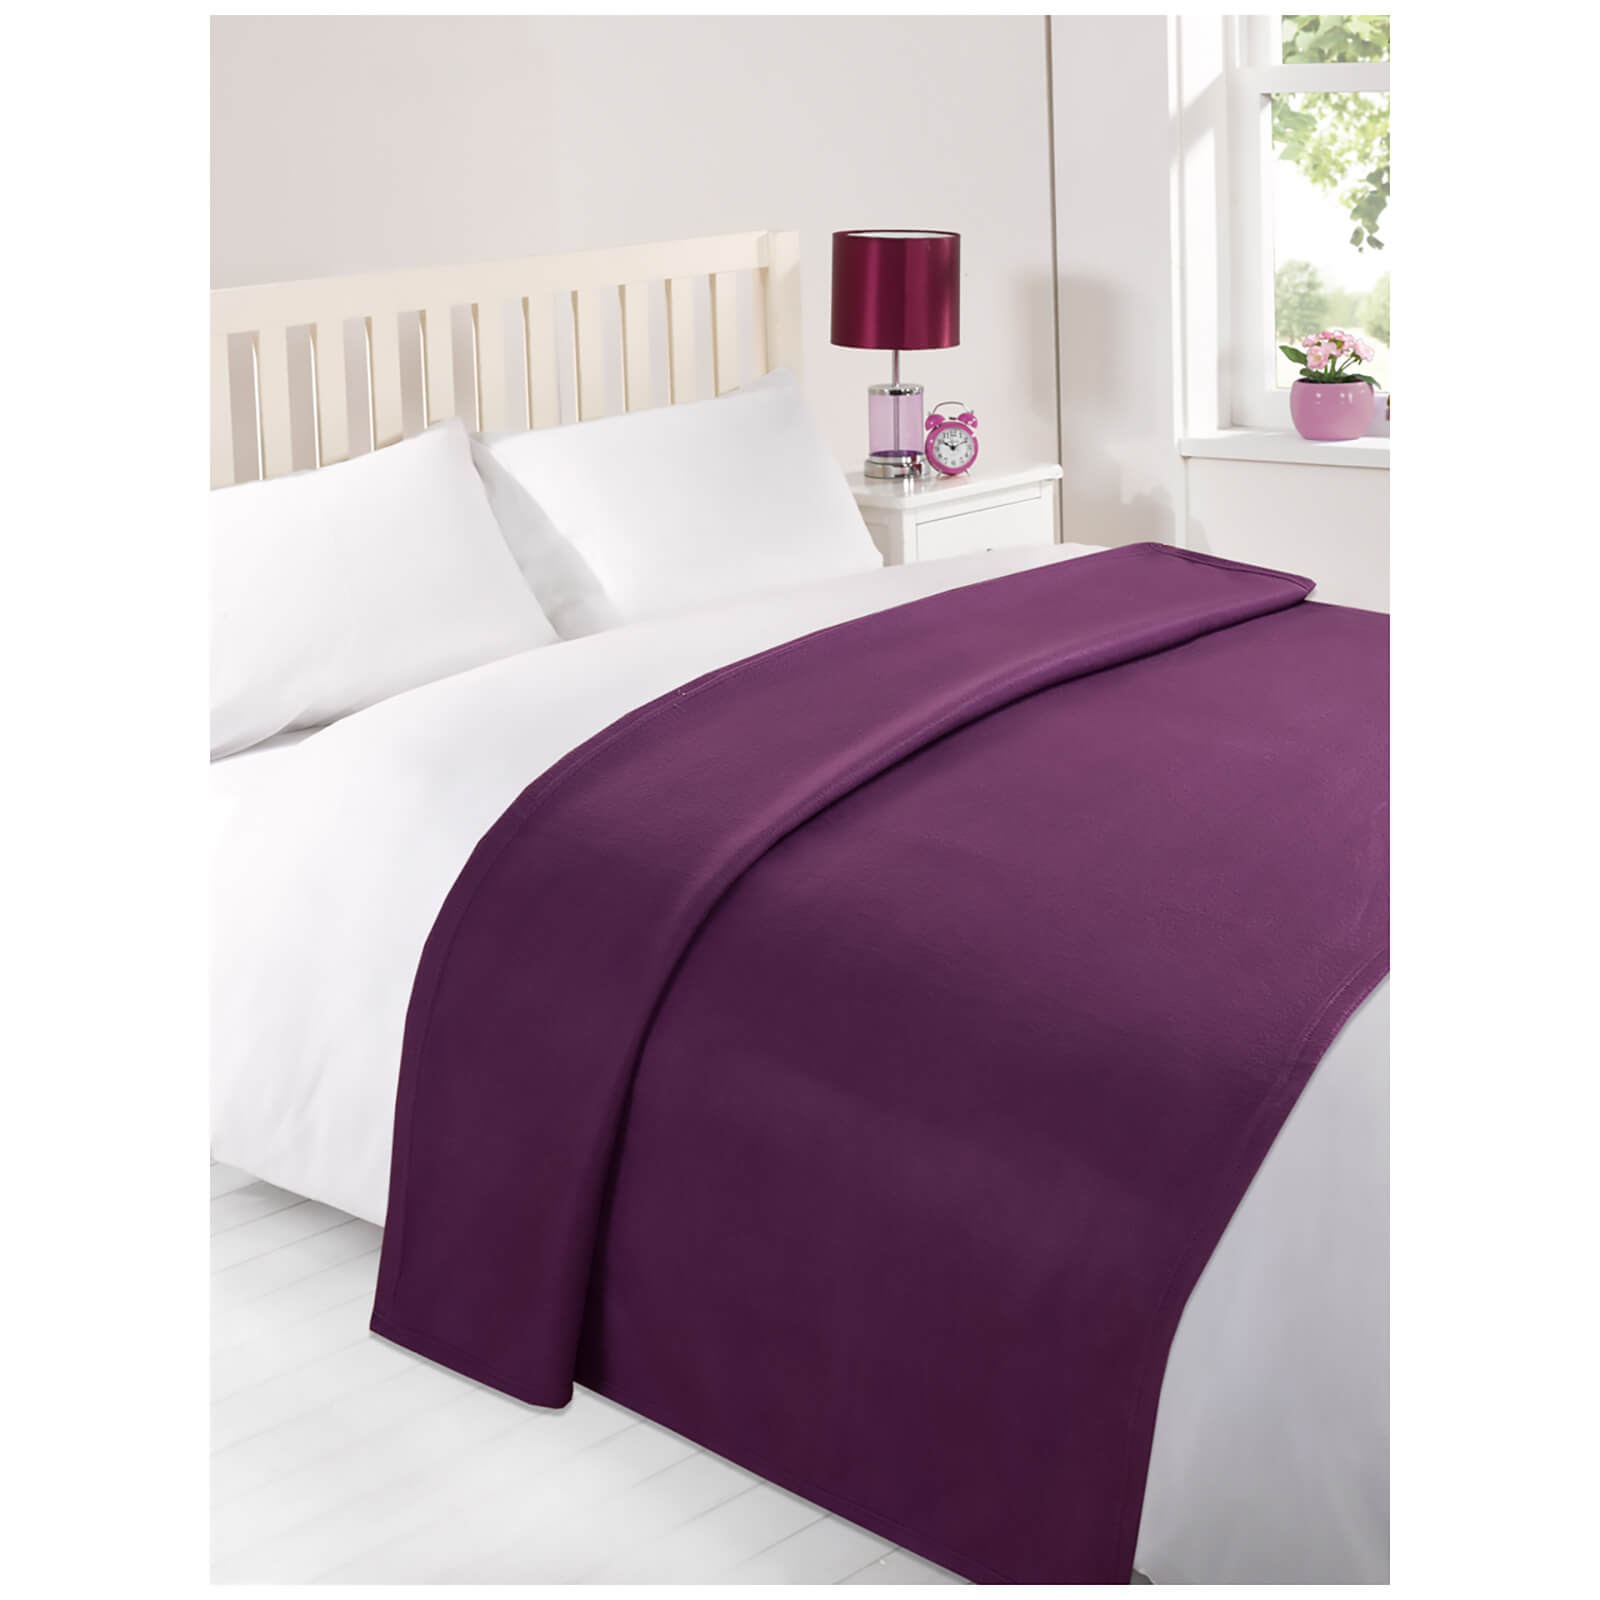 Dreamscene Soft Fleece Throw (120 x 150cm) - Grape